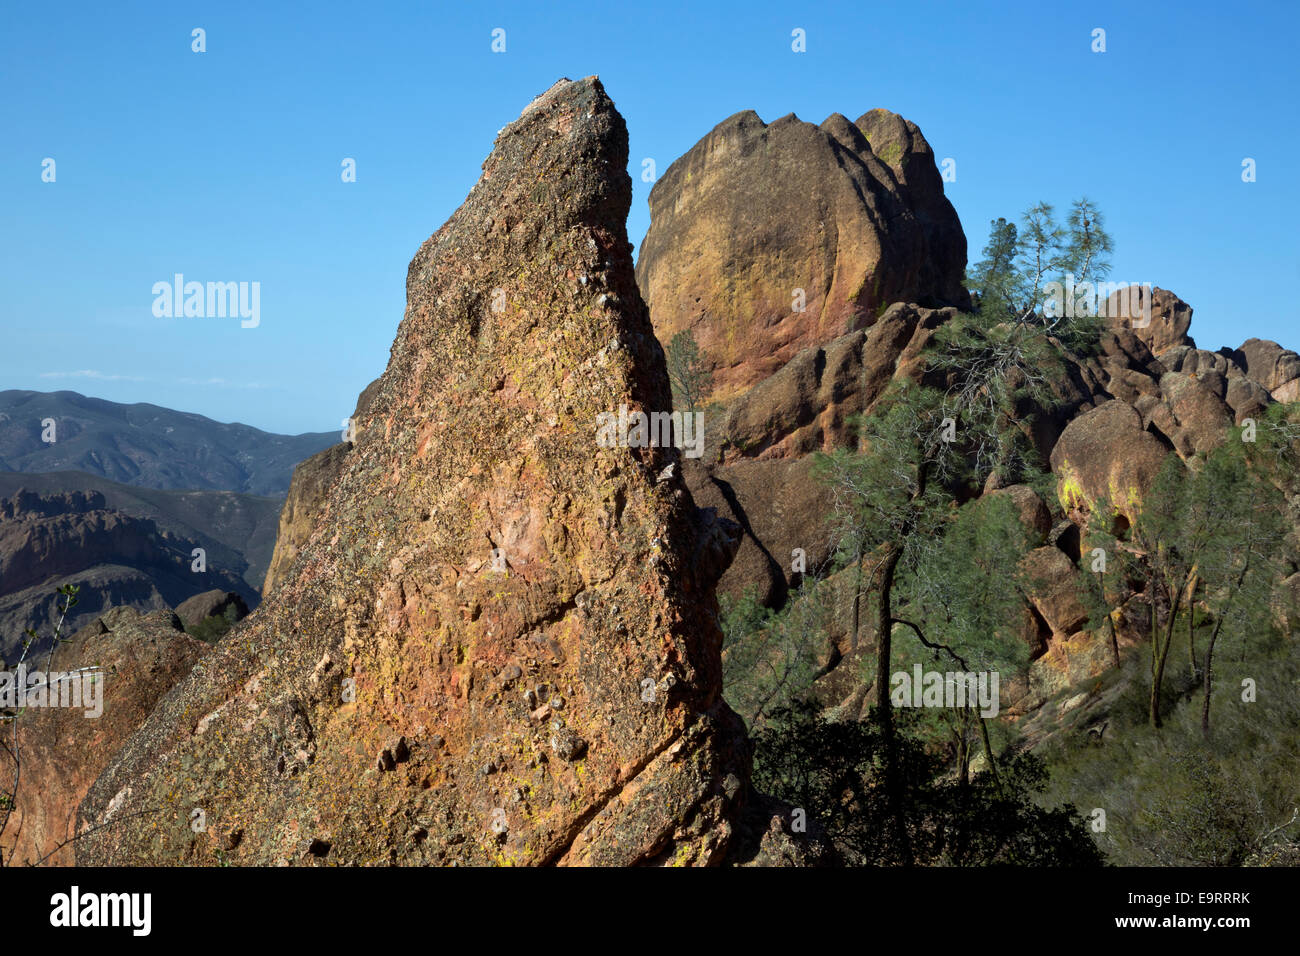 CA02375-00...CALIFORNIA - The rock spires in the High Peaks area from the High Peaks Trail in Pinnacles National - Stock Image